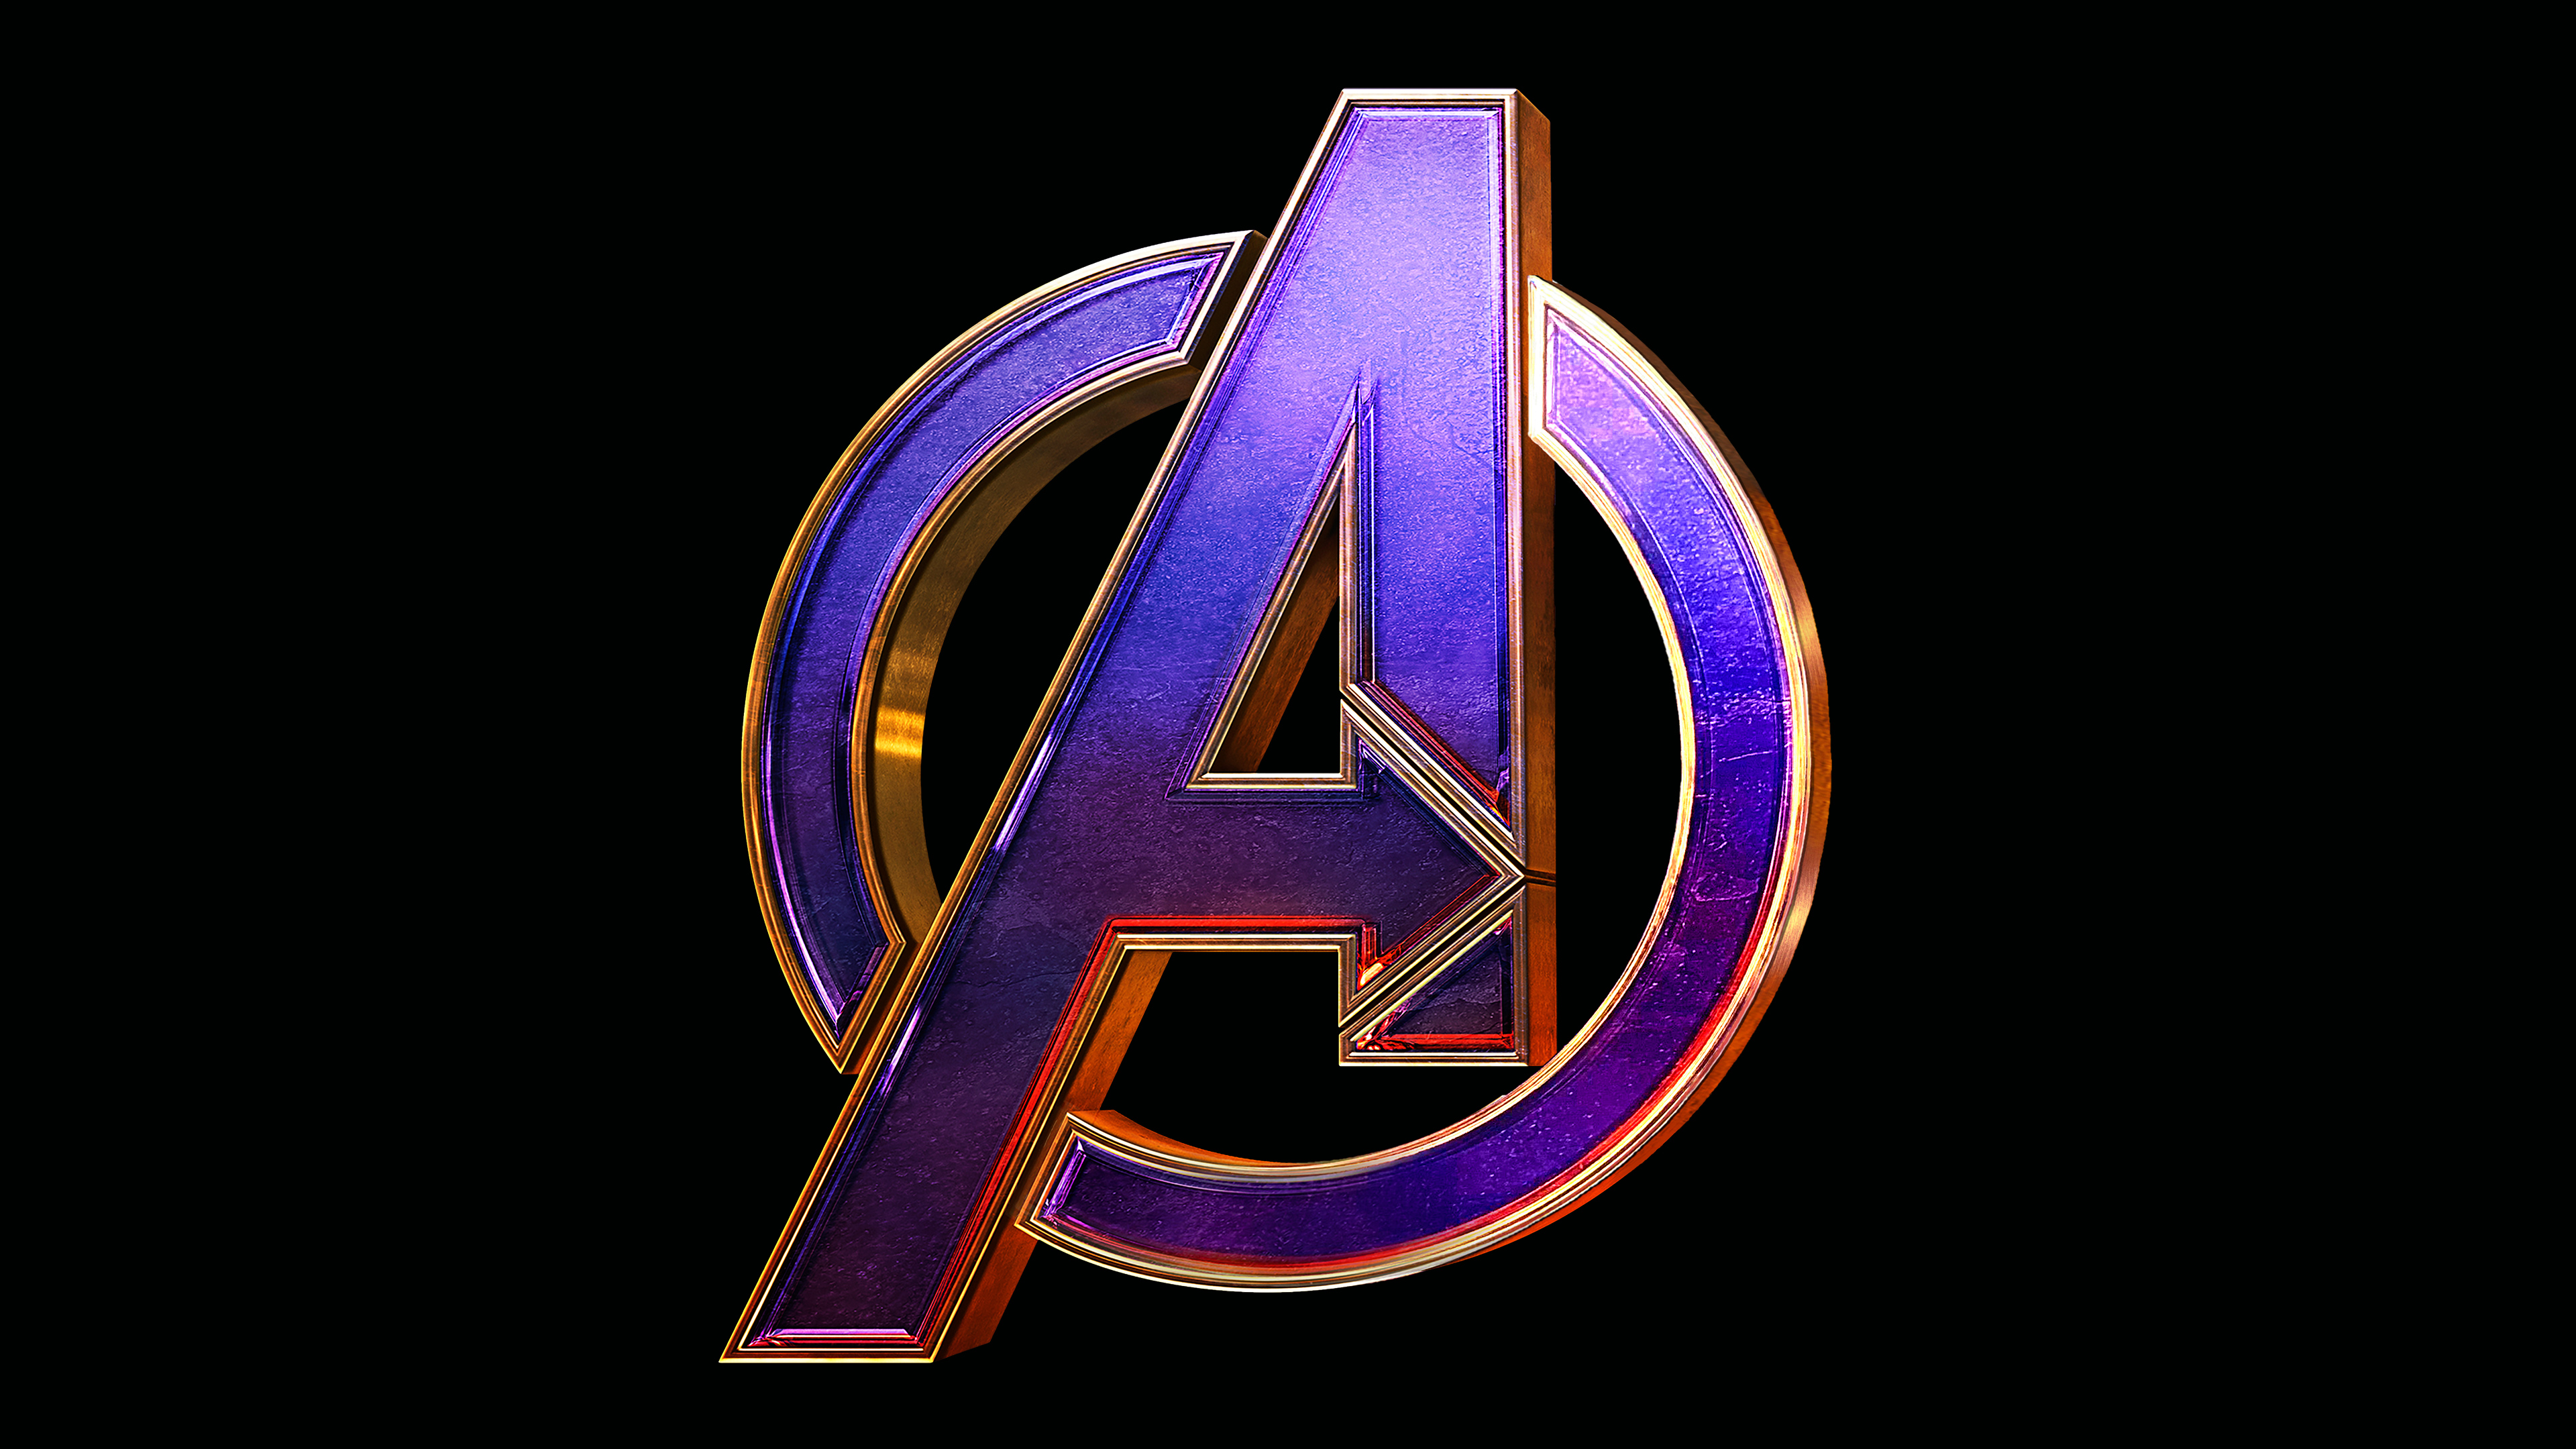 avengers endgame logo 4k 1558219921 - Avengers Endgame Logo 4k - movies wallpapers, logo wallpapers, hd-wallpapers, avengers endgame wallpapers, avengers end game wallpapers, 4k-wallpapers, 2019 movies wallpapers